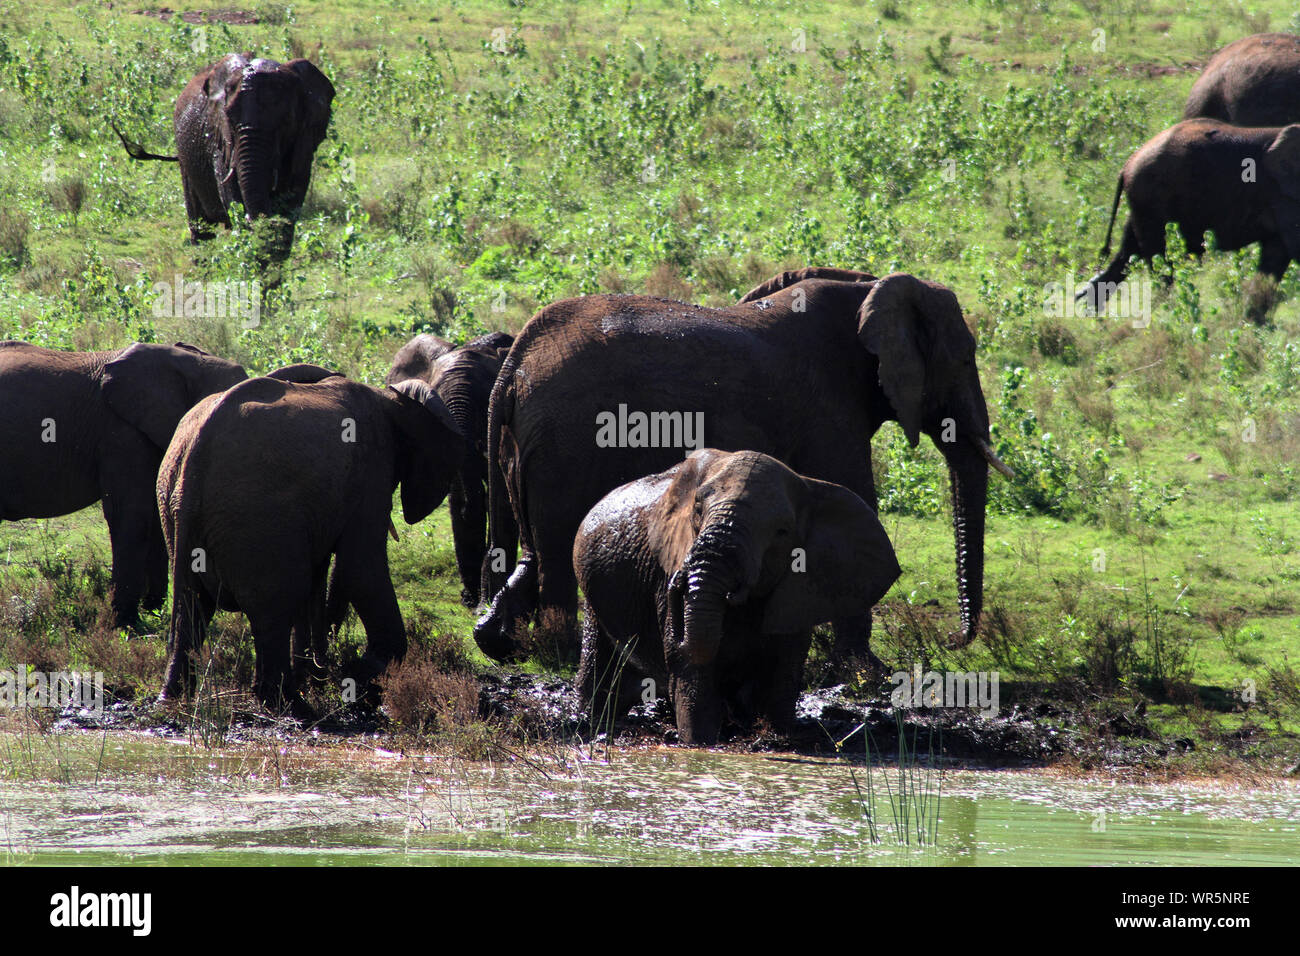 Herd of elephants playing and drinking by the waters edge, Pongolapoort Dam, South Africa Stock Photo